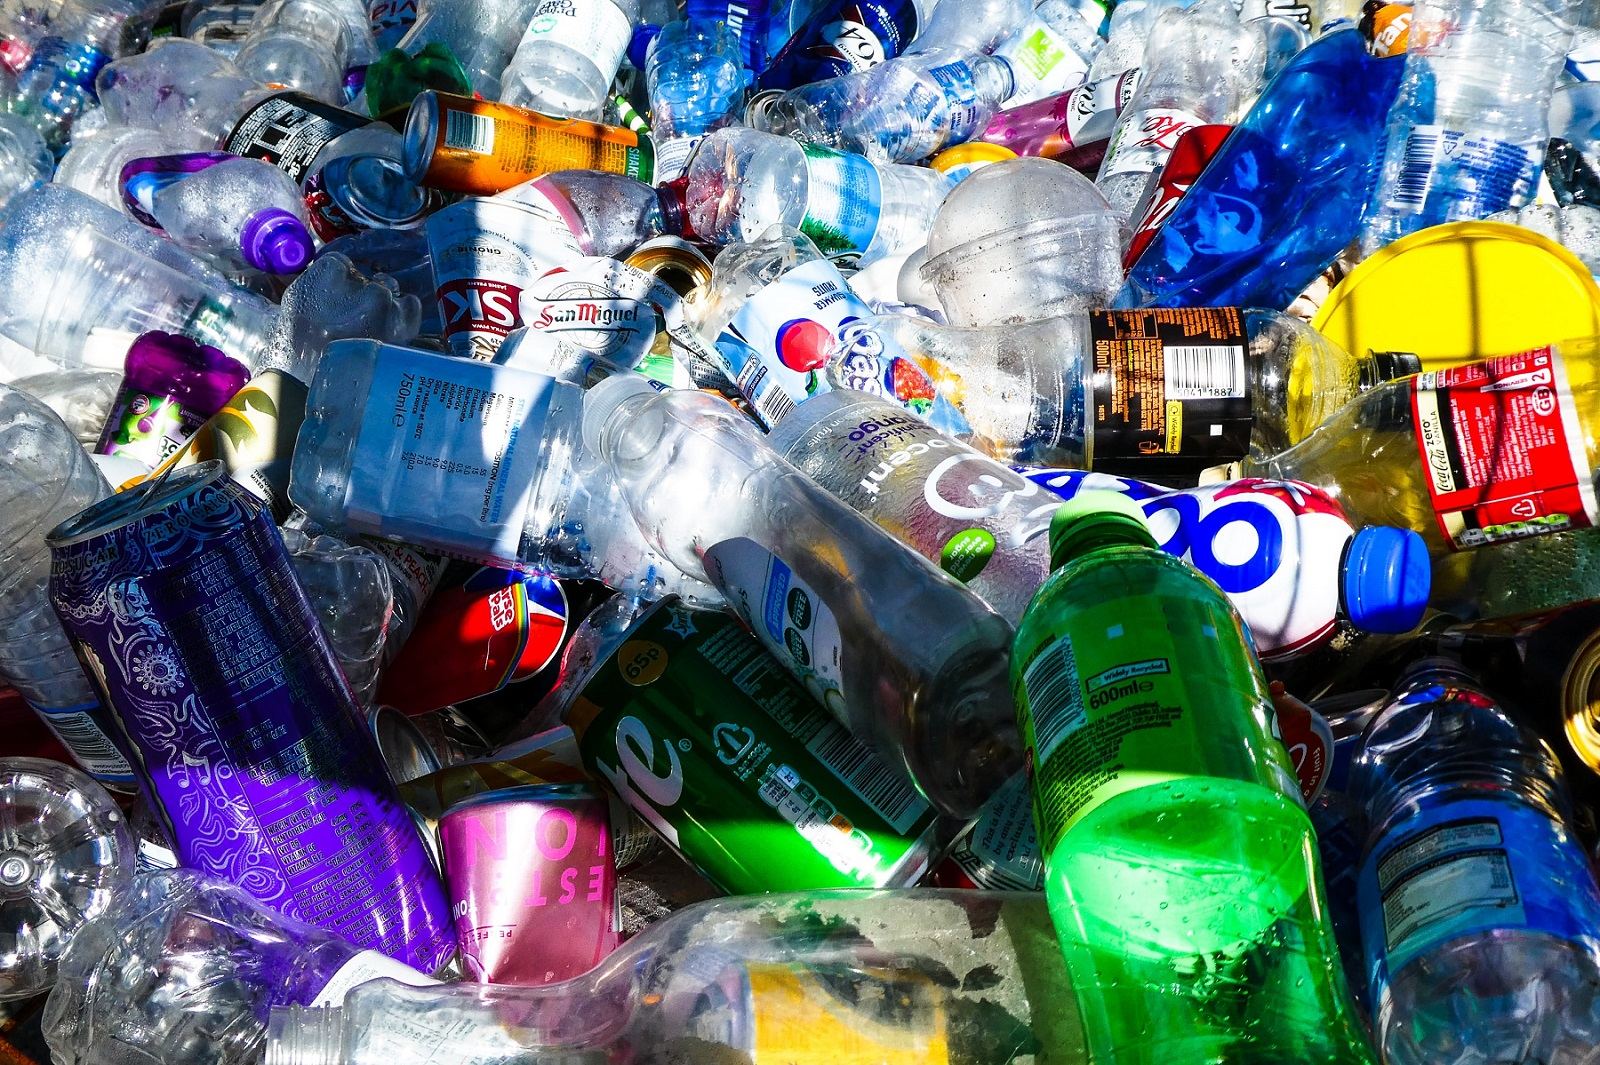 Deposit return schemes – will they revolutionise how we recycle?